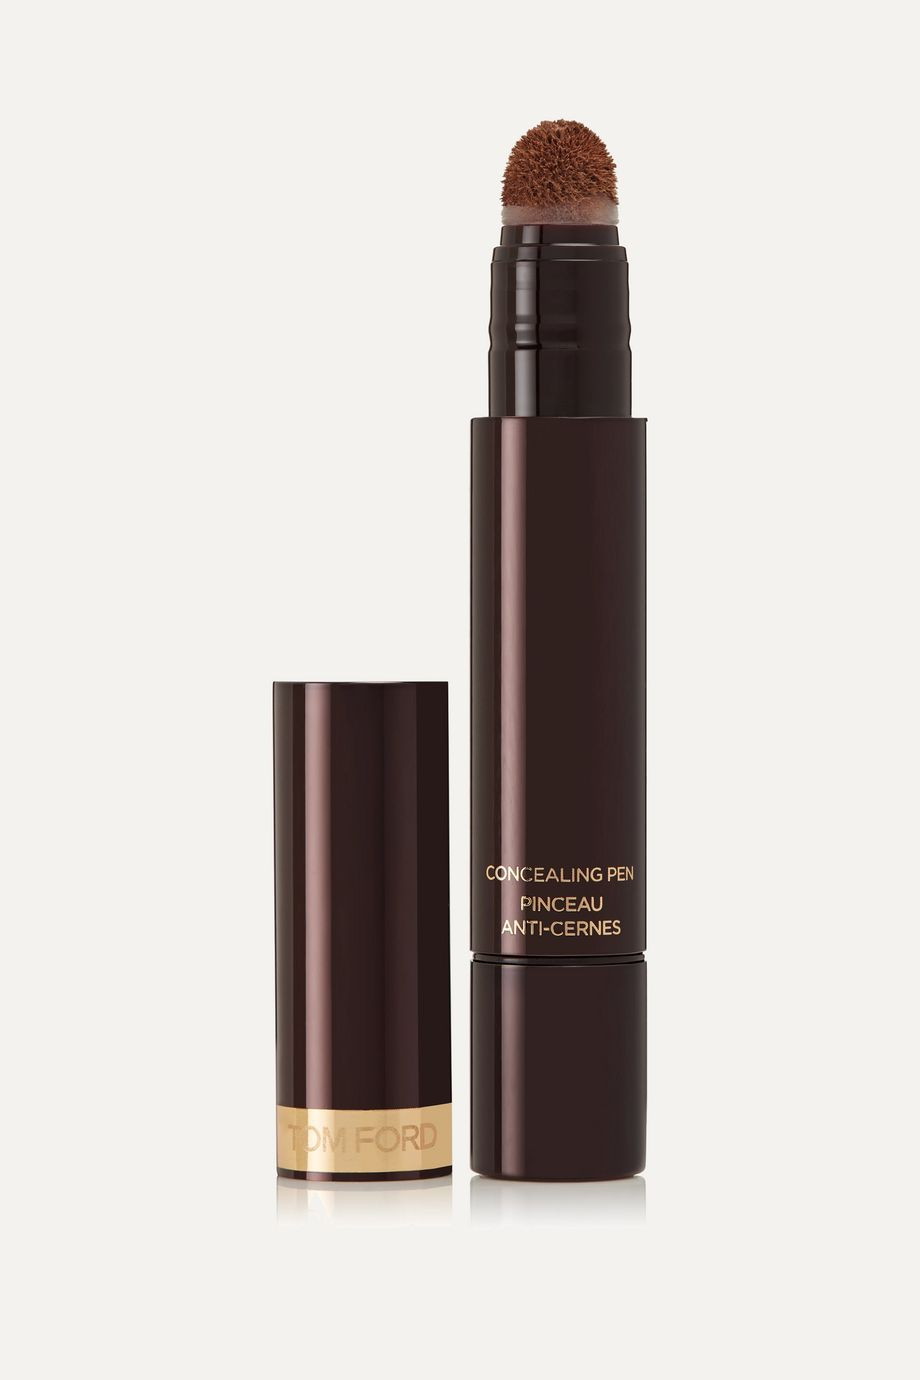 TOM FORD BEAUTY Concealing Pen - Macassar 12.0